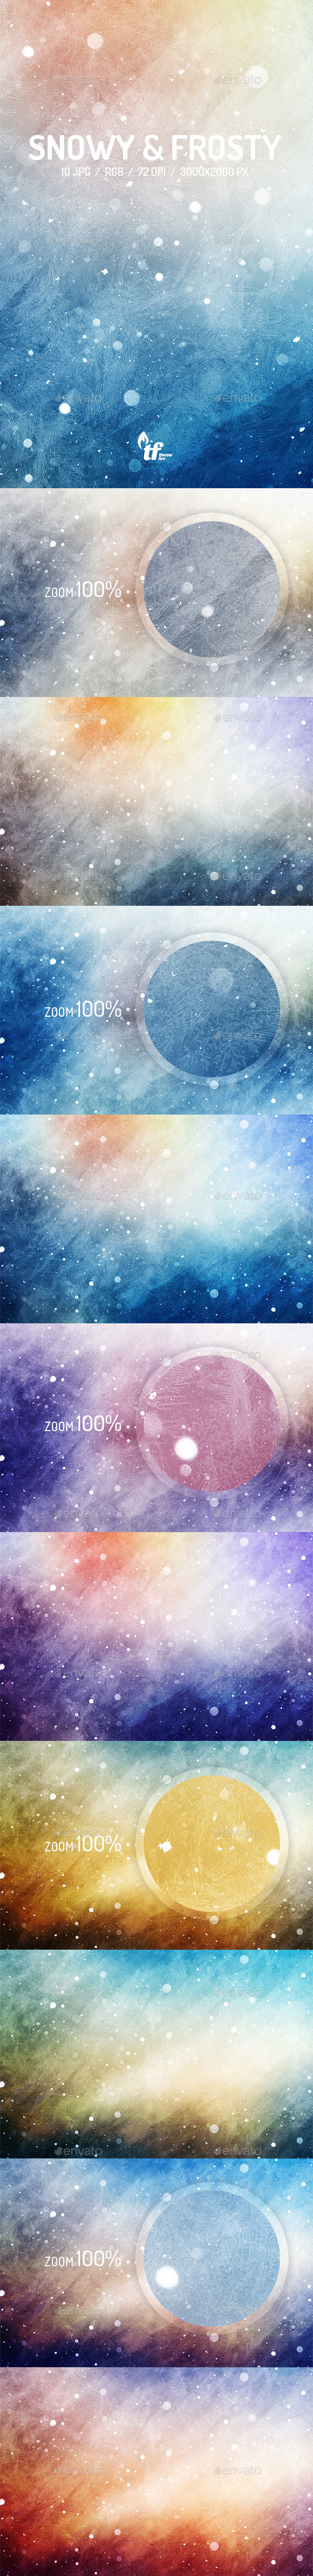 GraphicRiver Snowy and Frosty Backgrounds 9752330